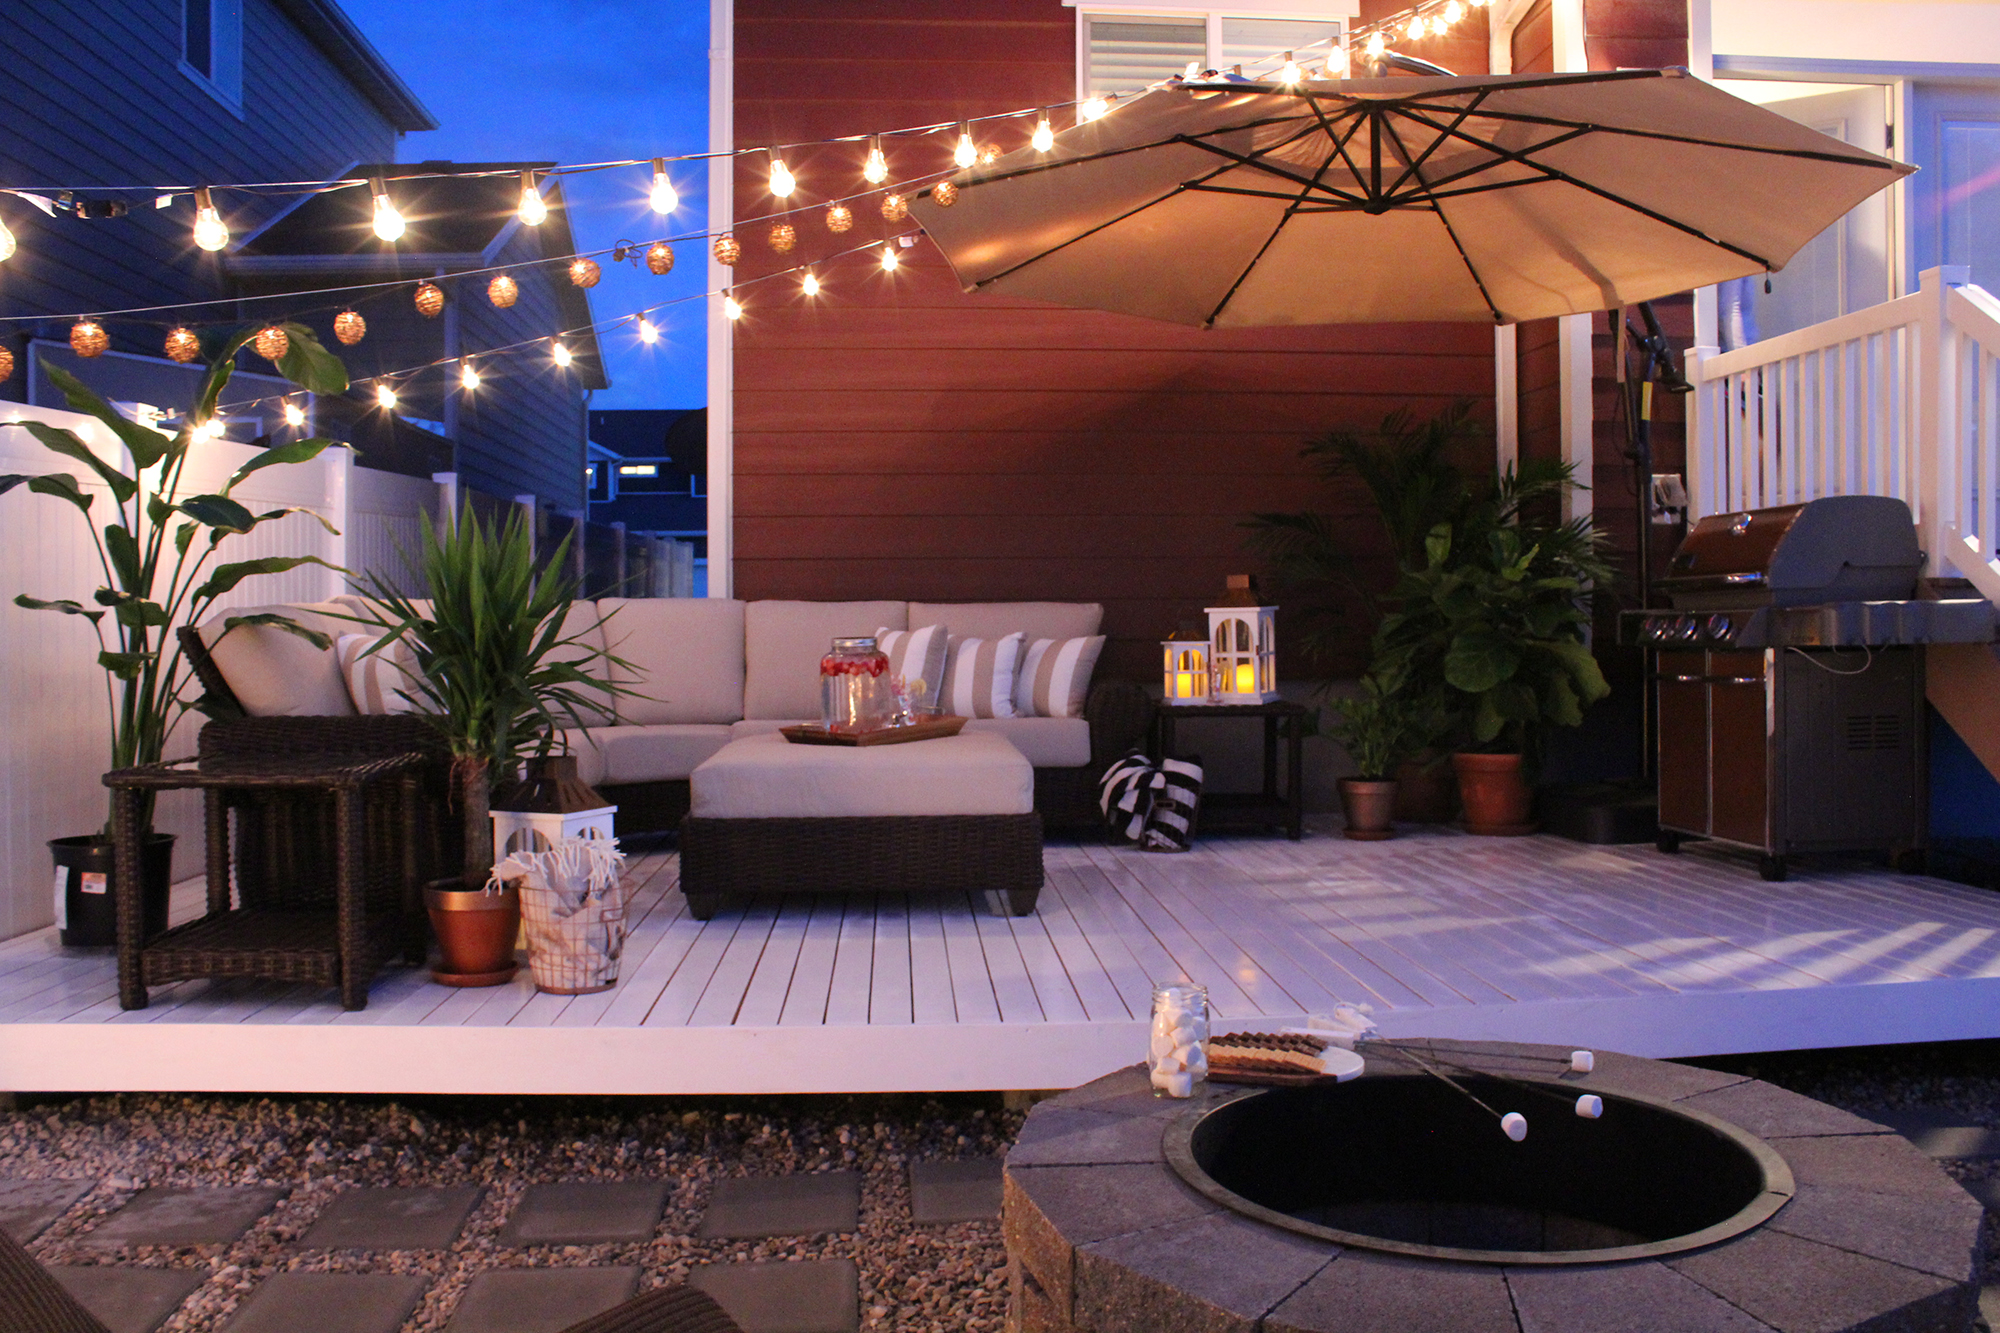 The Home Depot | TOP 4 OUTDOOR DECOR TRENDS FROM THIS YEAR ... on Home Depot Patio Ideas id=73509